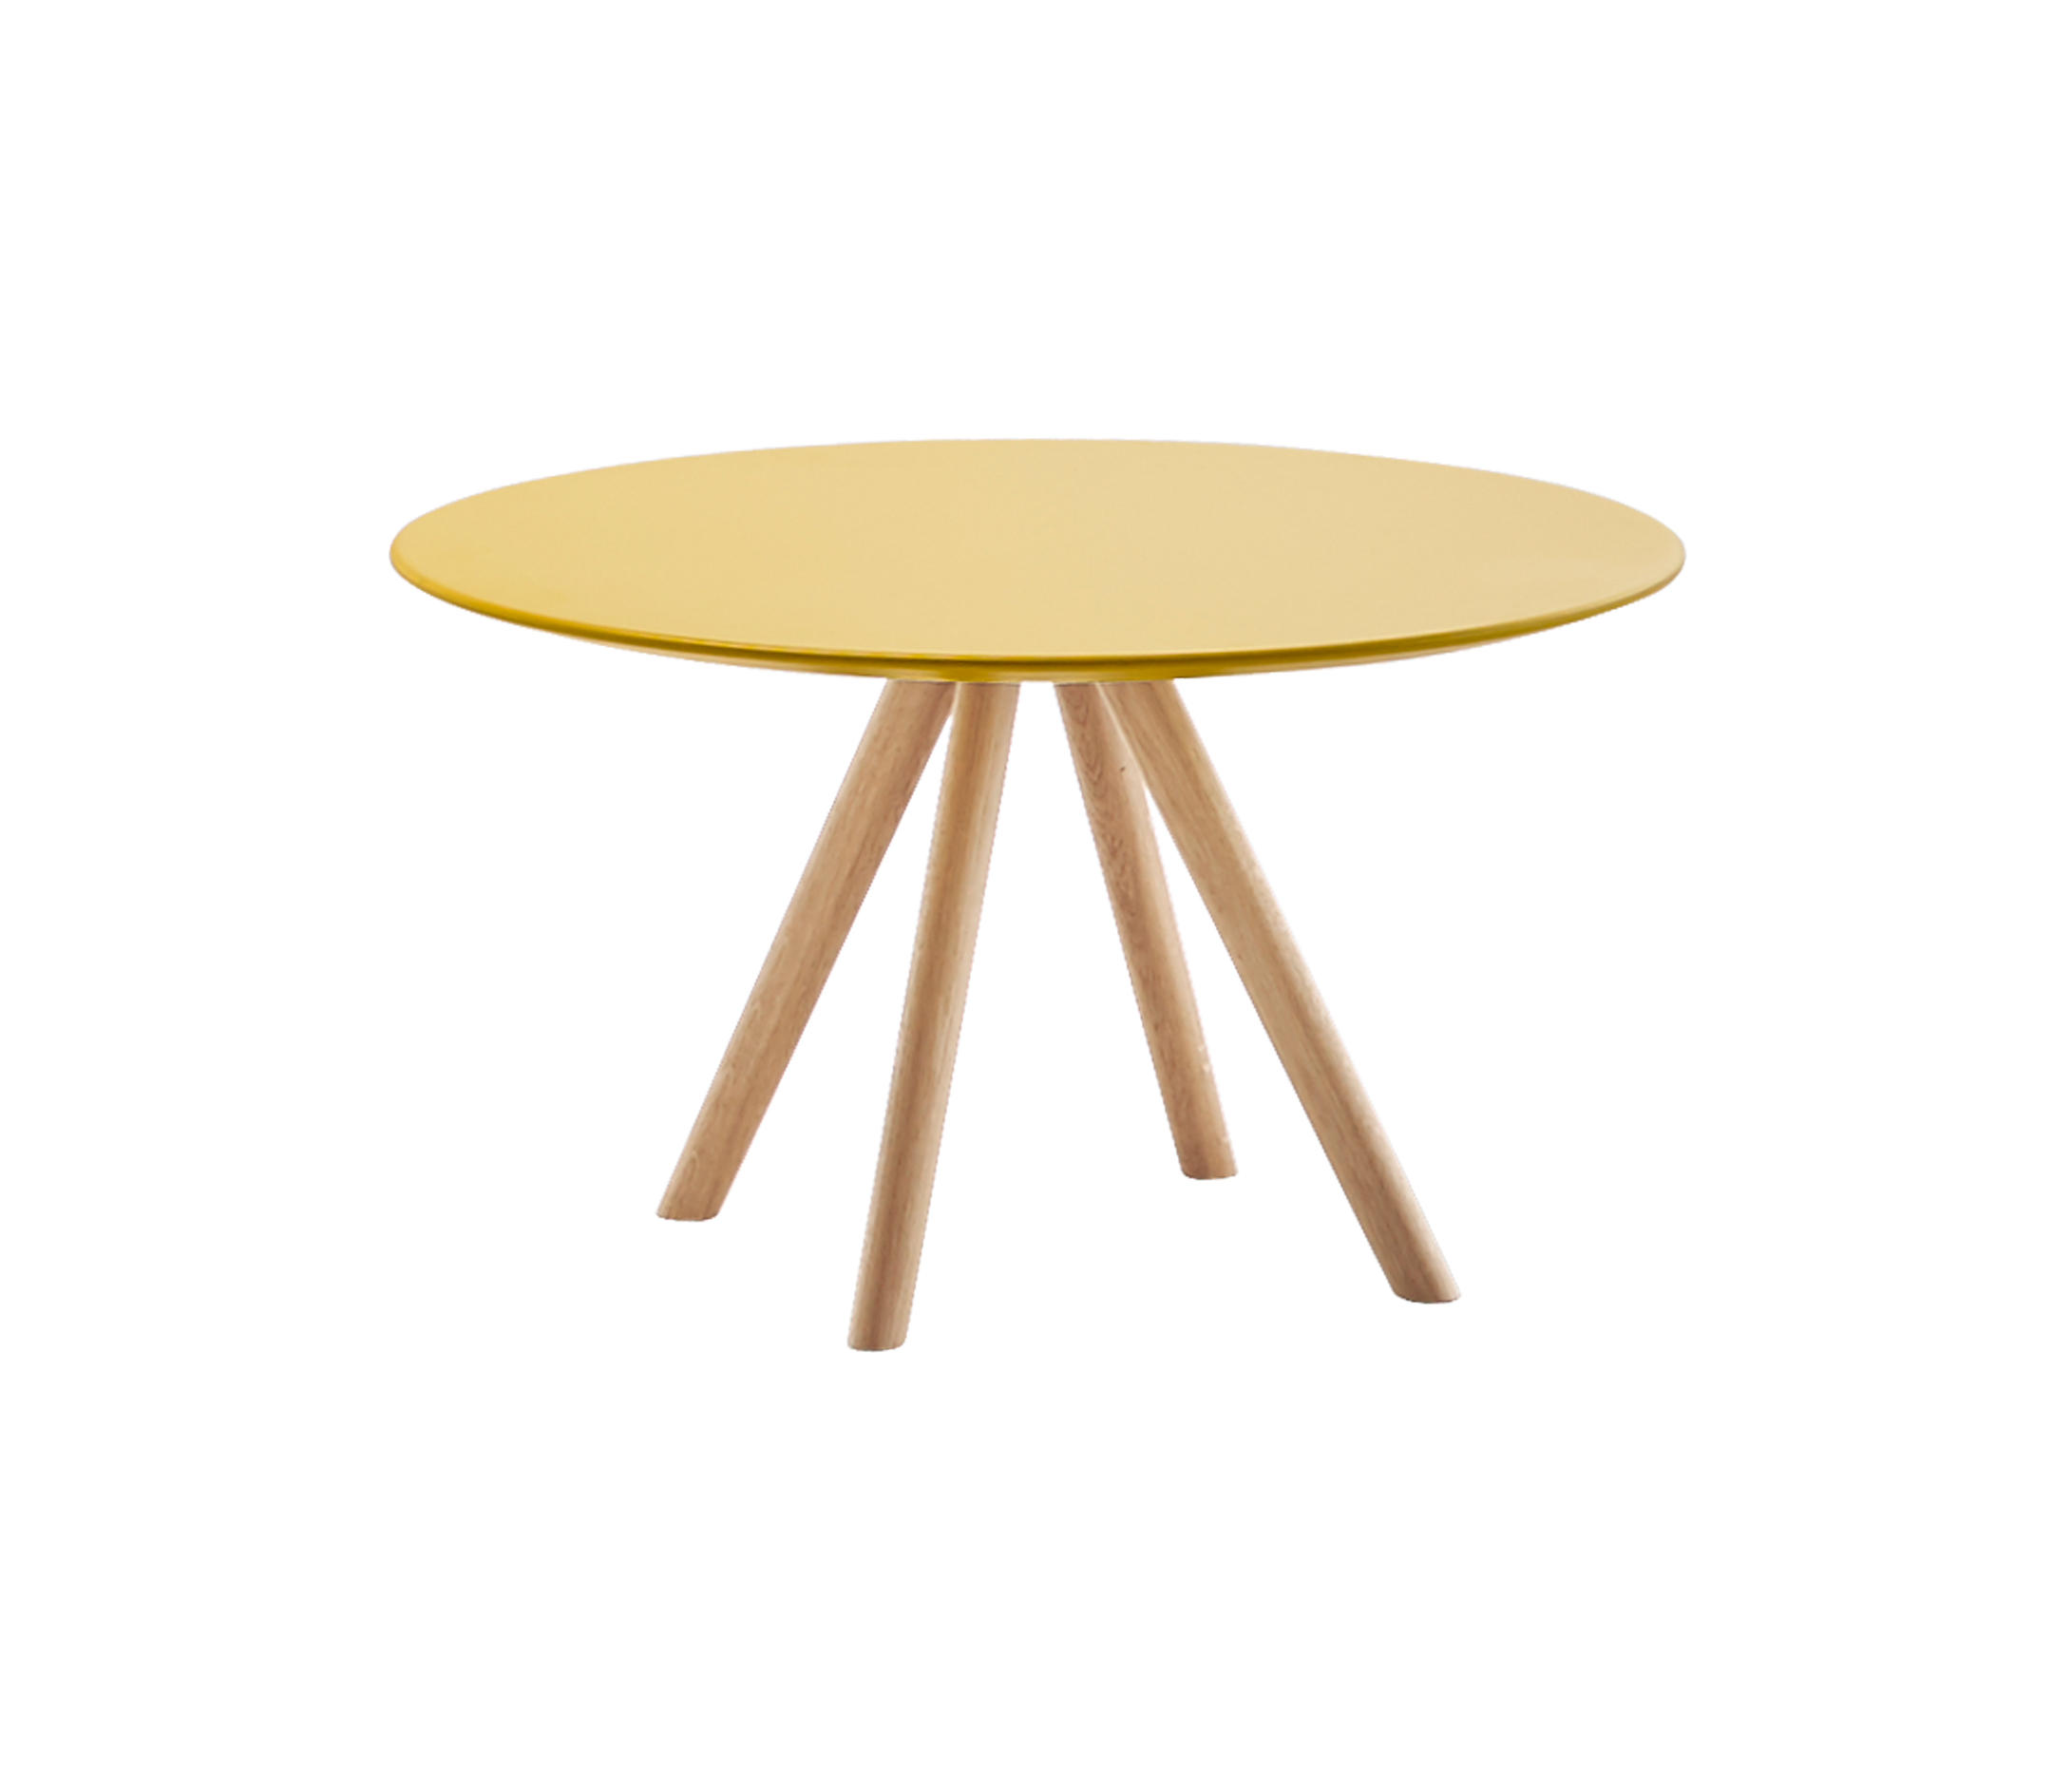 Stiks Table by Christophe Pillet for Inclass